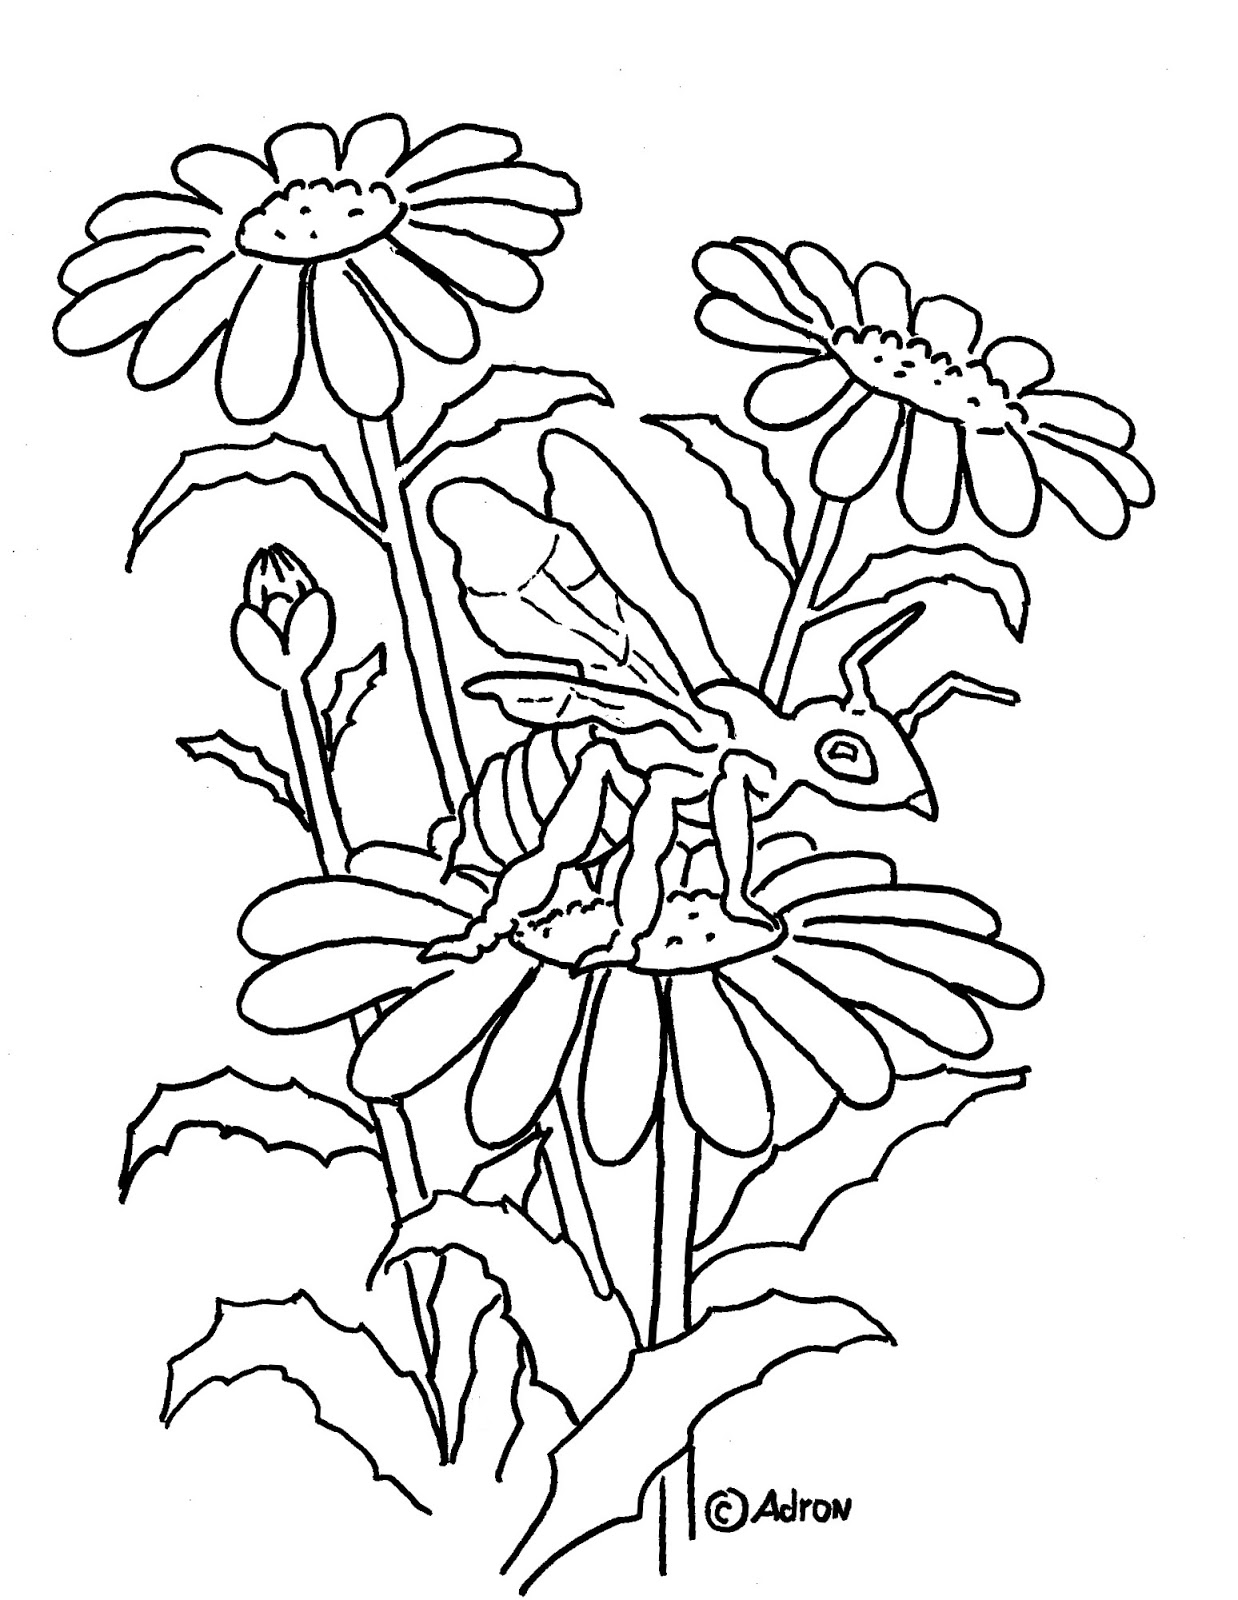 bee on flower coloring page coloring pages for kids by mr adron bee on flower bee flower coloring page on